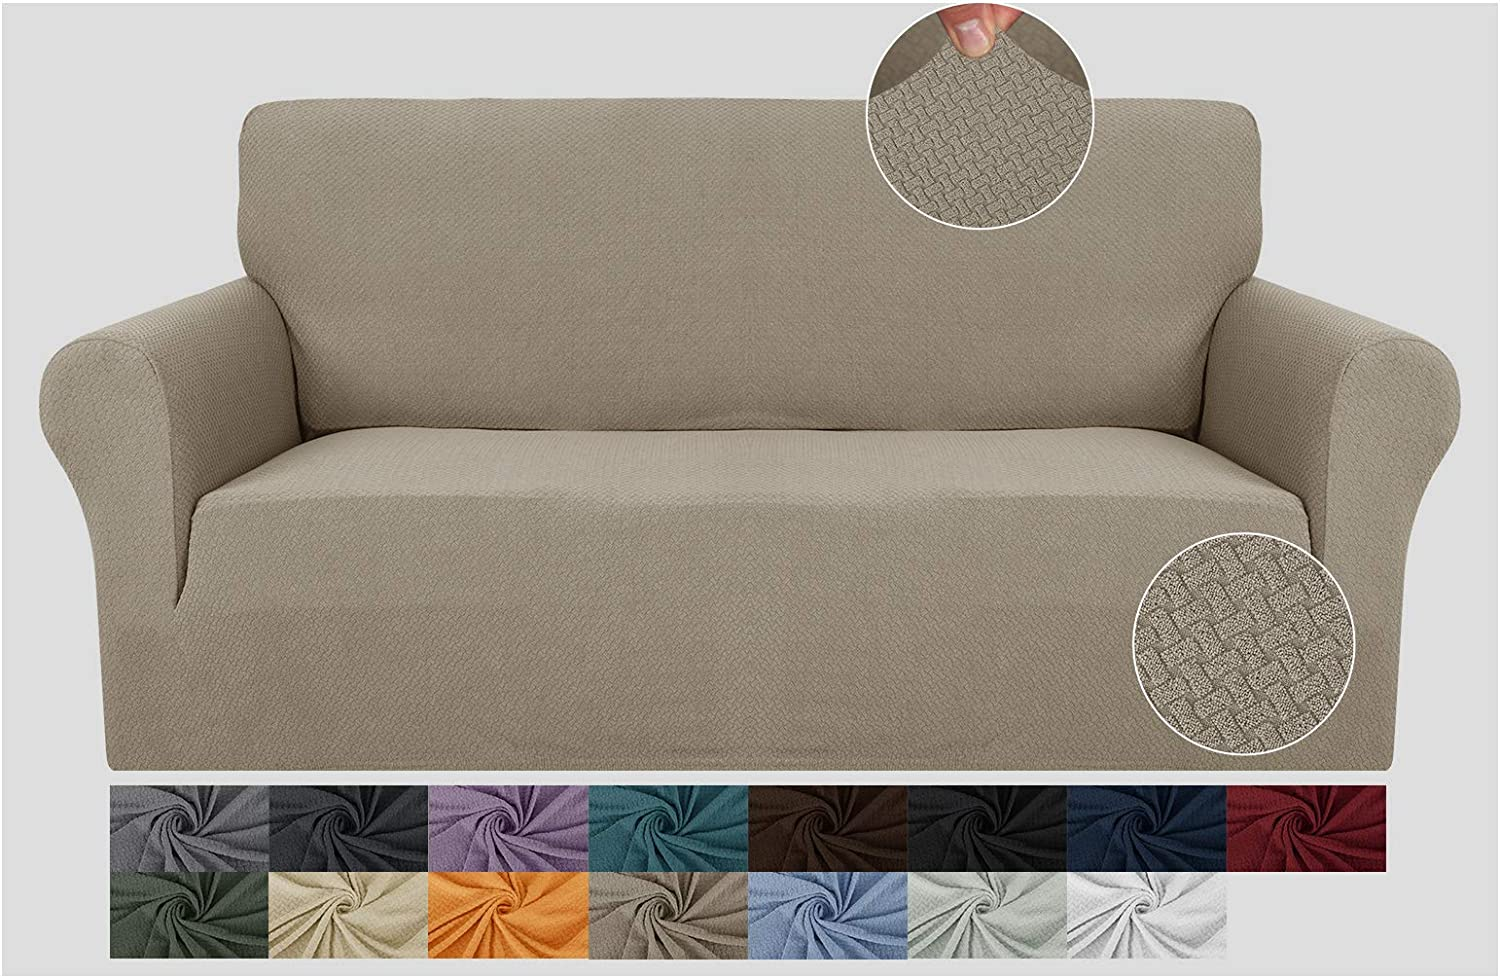 JIVINER Super Stretch 1 Piece Sofa Covers for 3 Cushion Couch Newest Jacquard Non Slip Sofa Slipcovers Thick Couch Covers for Pets Furniture Protector with Elastic Bands (Sofa, Khaki)